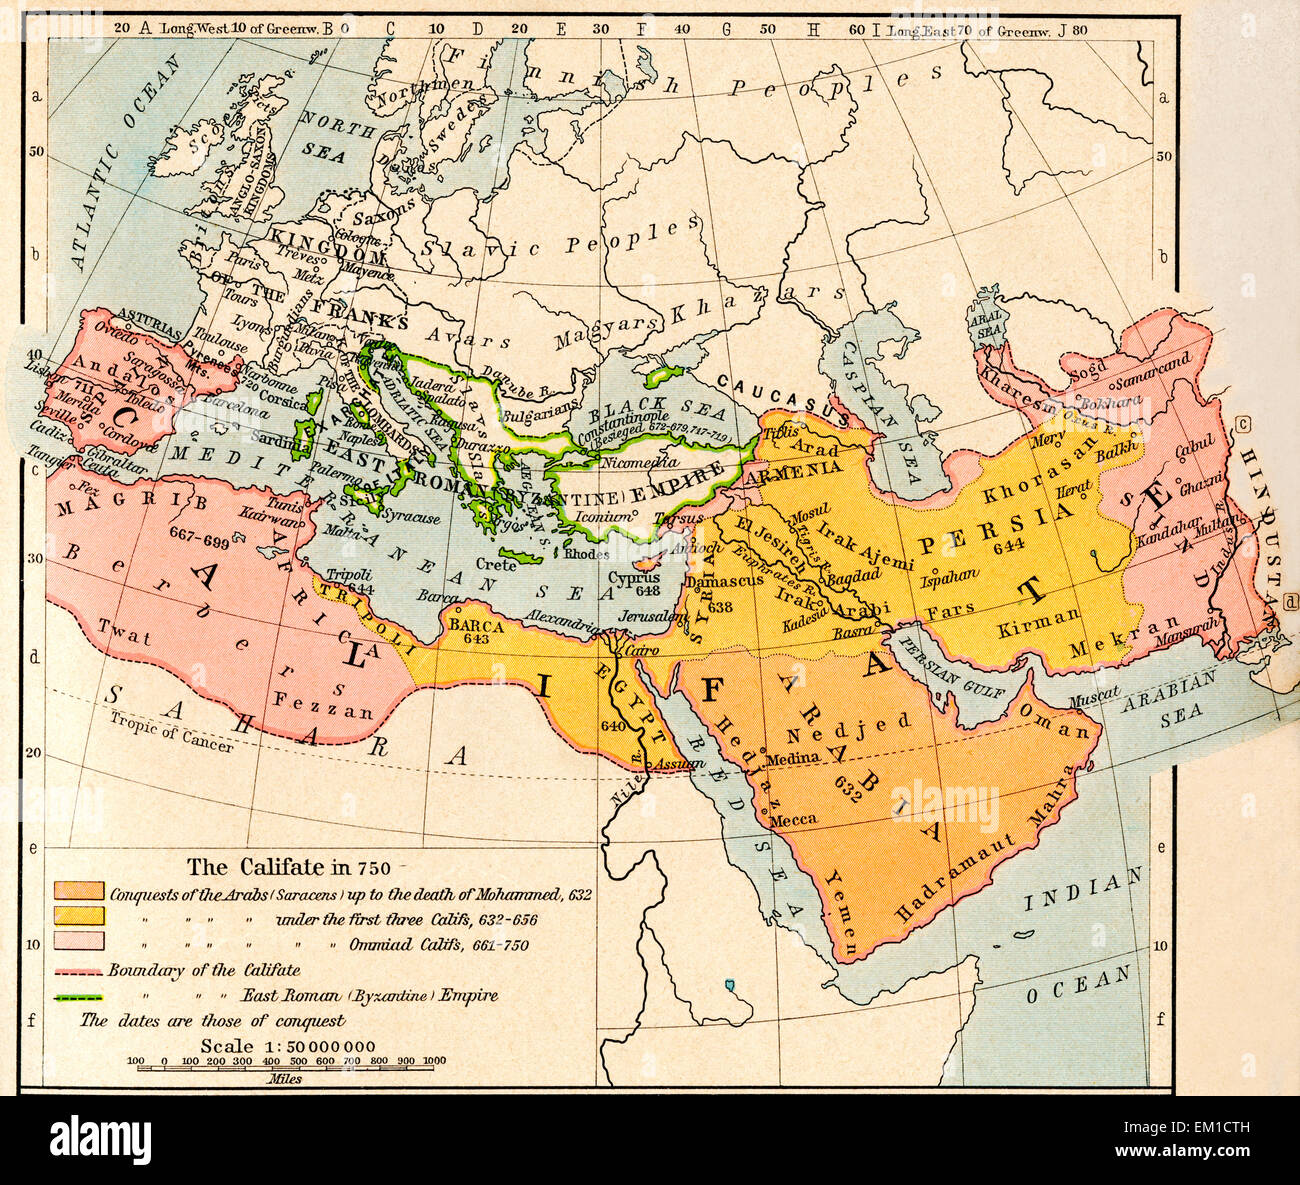 Map of the Muslim expansion and the Byzantine Empire at the end of the Umayyad Caliphate, in 750. Stock Photo